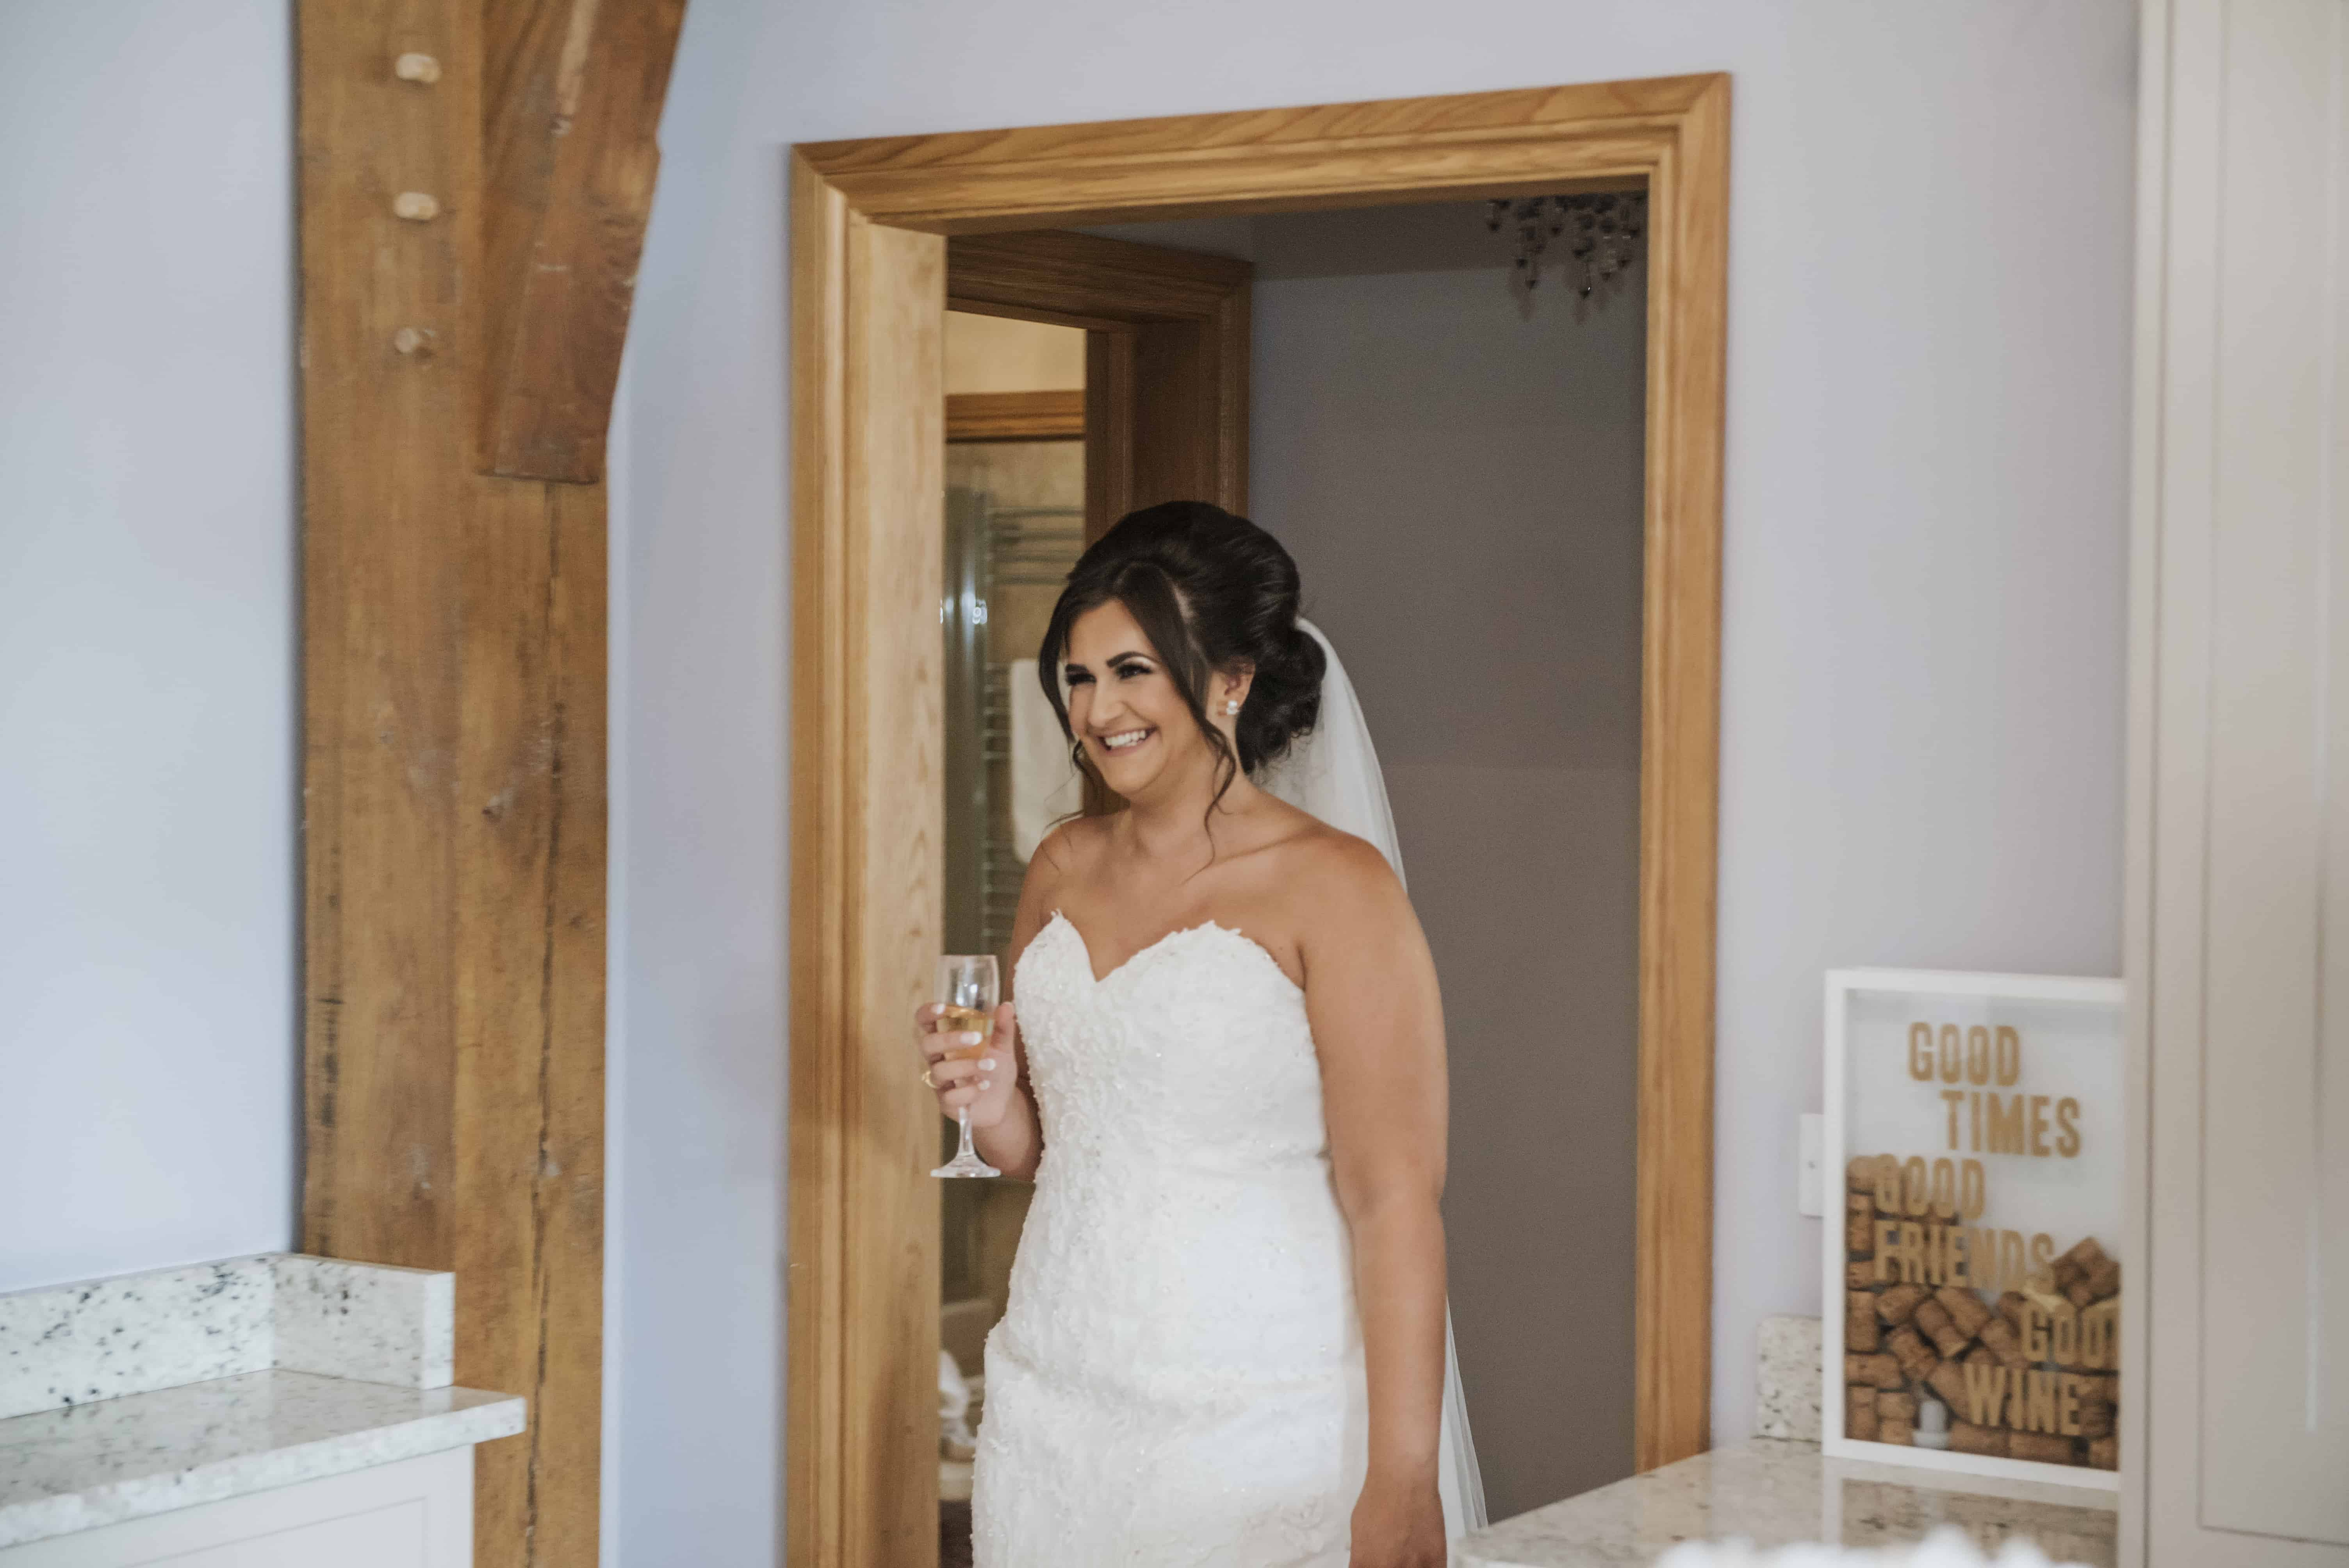 Bride stood smiling holding a glass of champagne Wedding Photographer